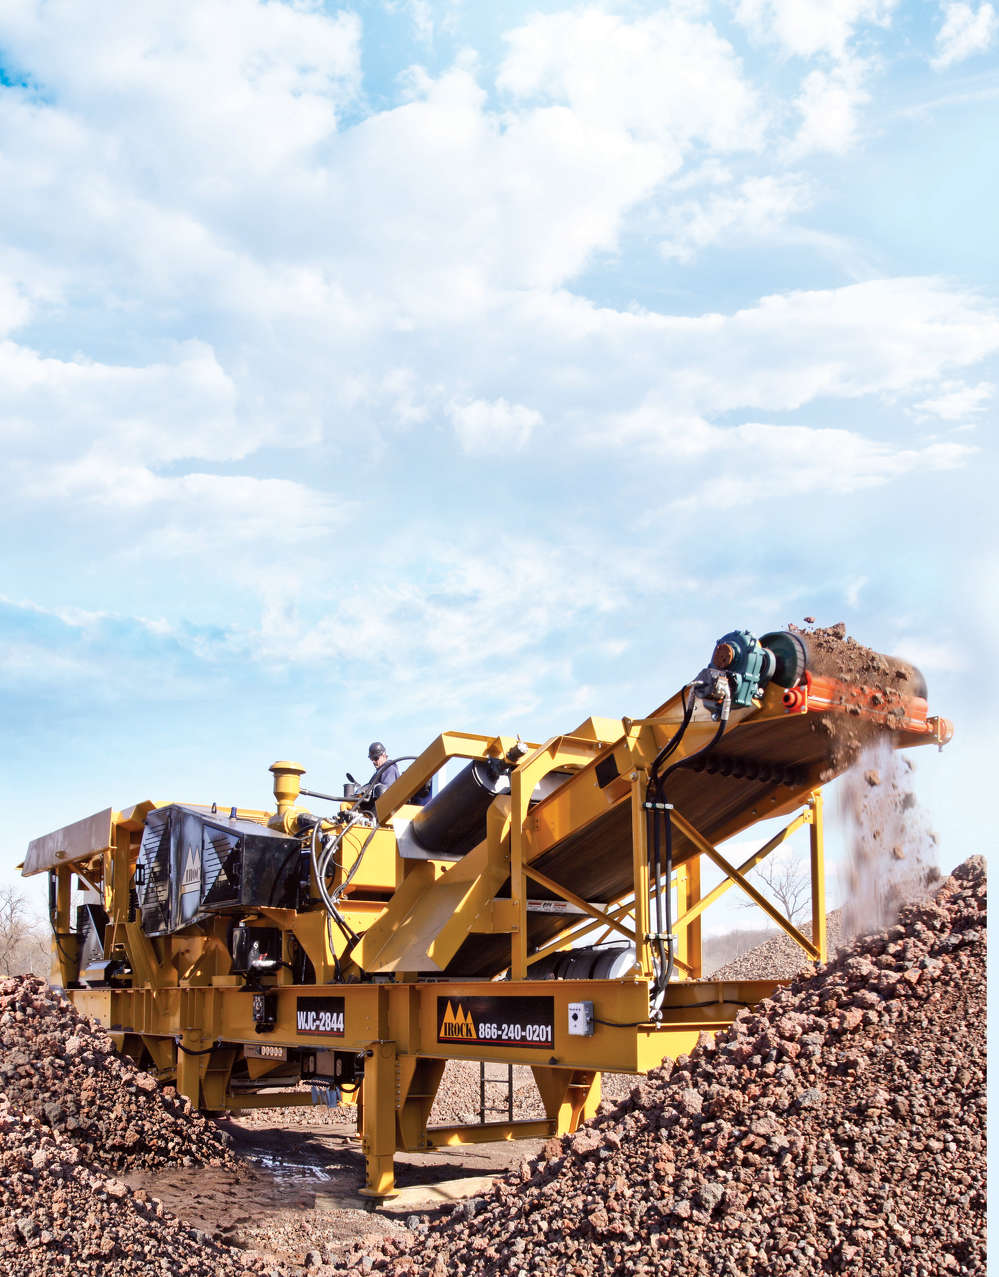 Abrasive materials such as aggregates, sand and gravel found in a variety of construction and road building applications, expose crushers to the risk of excessive wear. This wear can cause even greater damage and slower production if not kept in check.